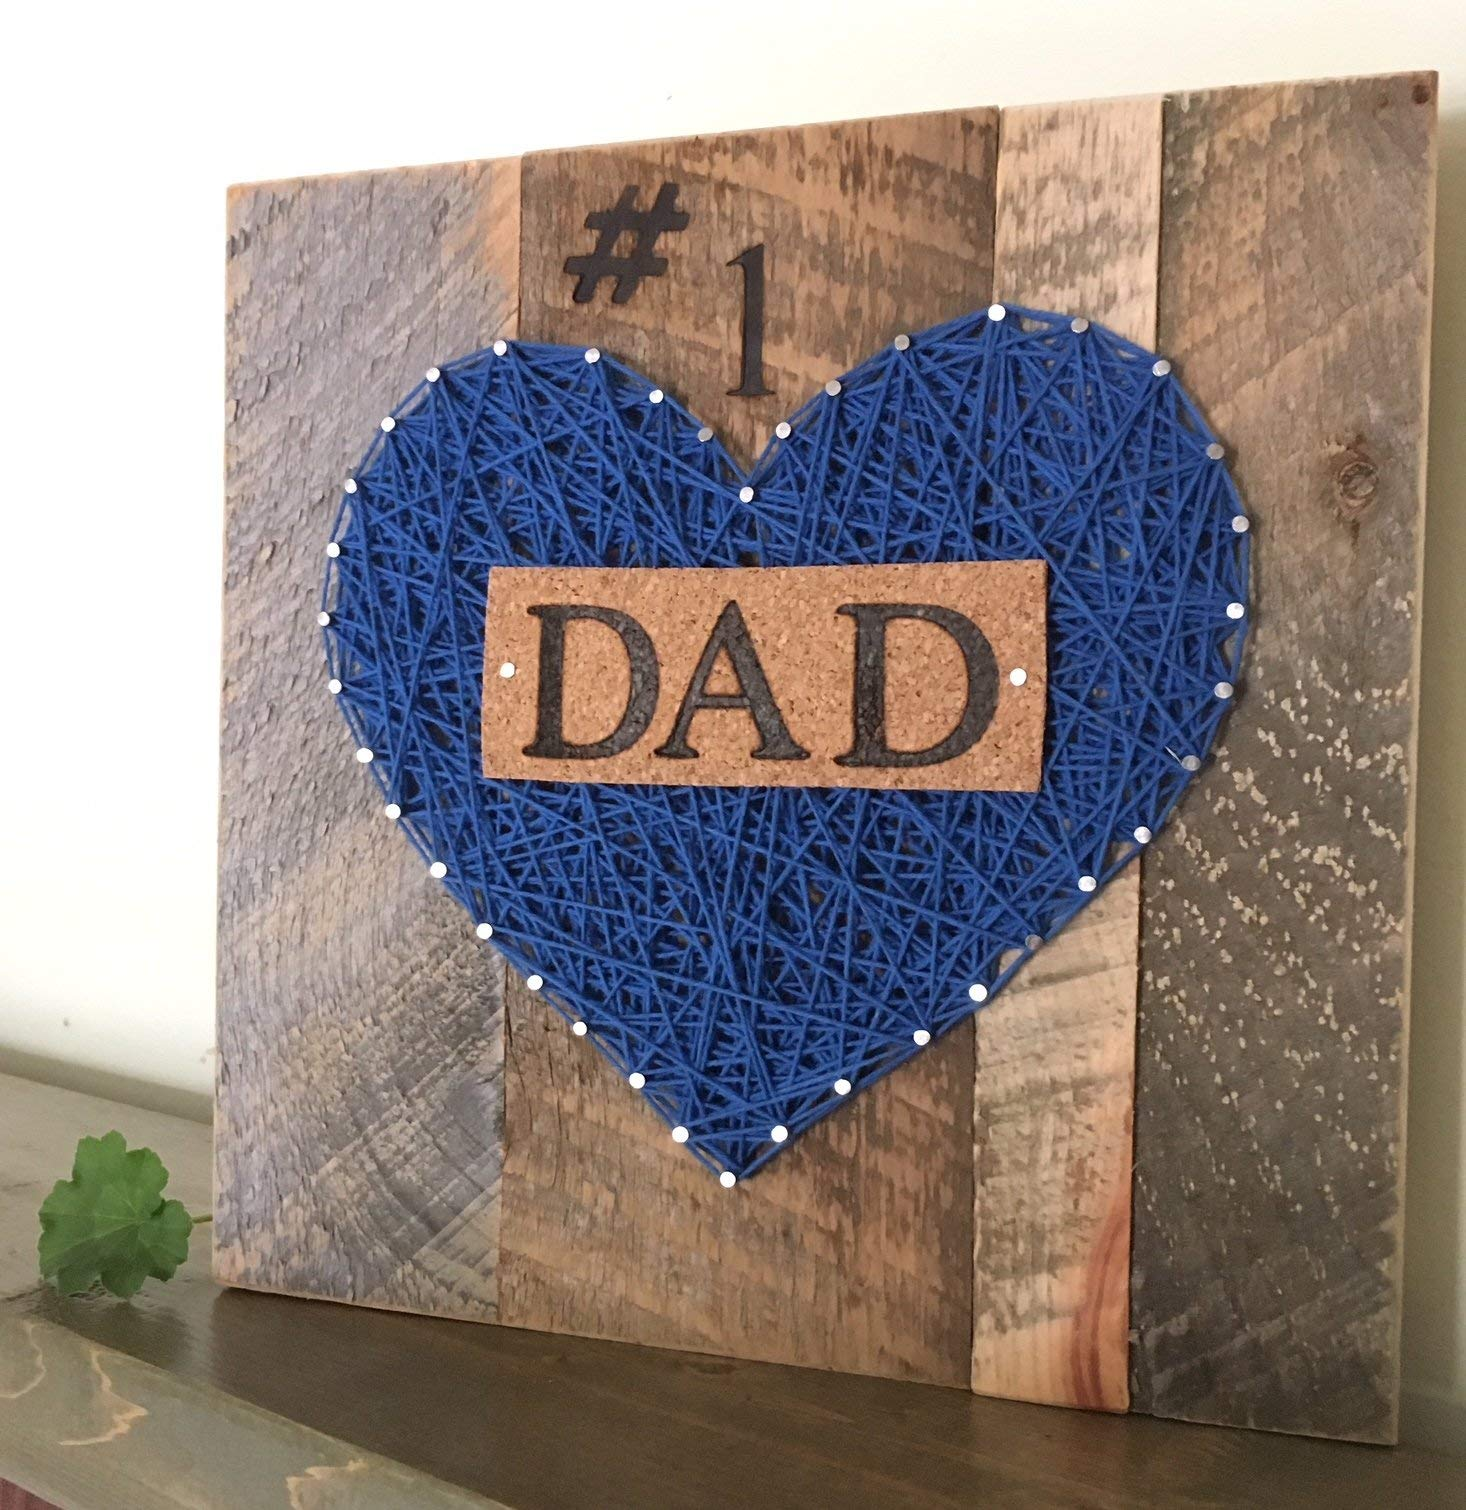 #1 Dad Nail String Art sign for the best dad ever! A special and unique gift for Father's Day from the kids. Great Birthday and just because gifts.